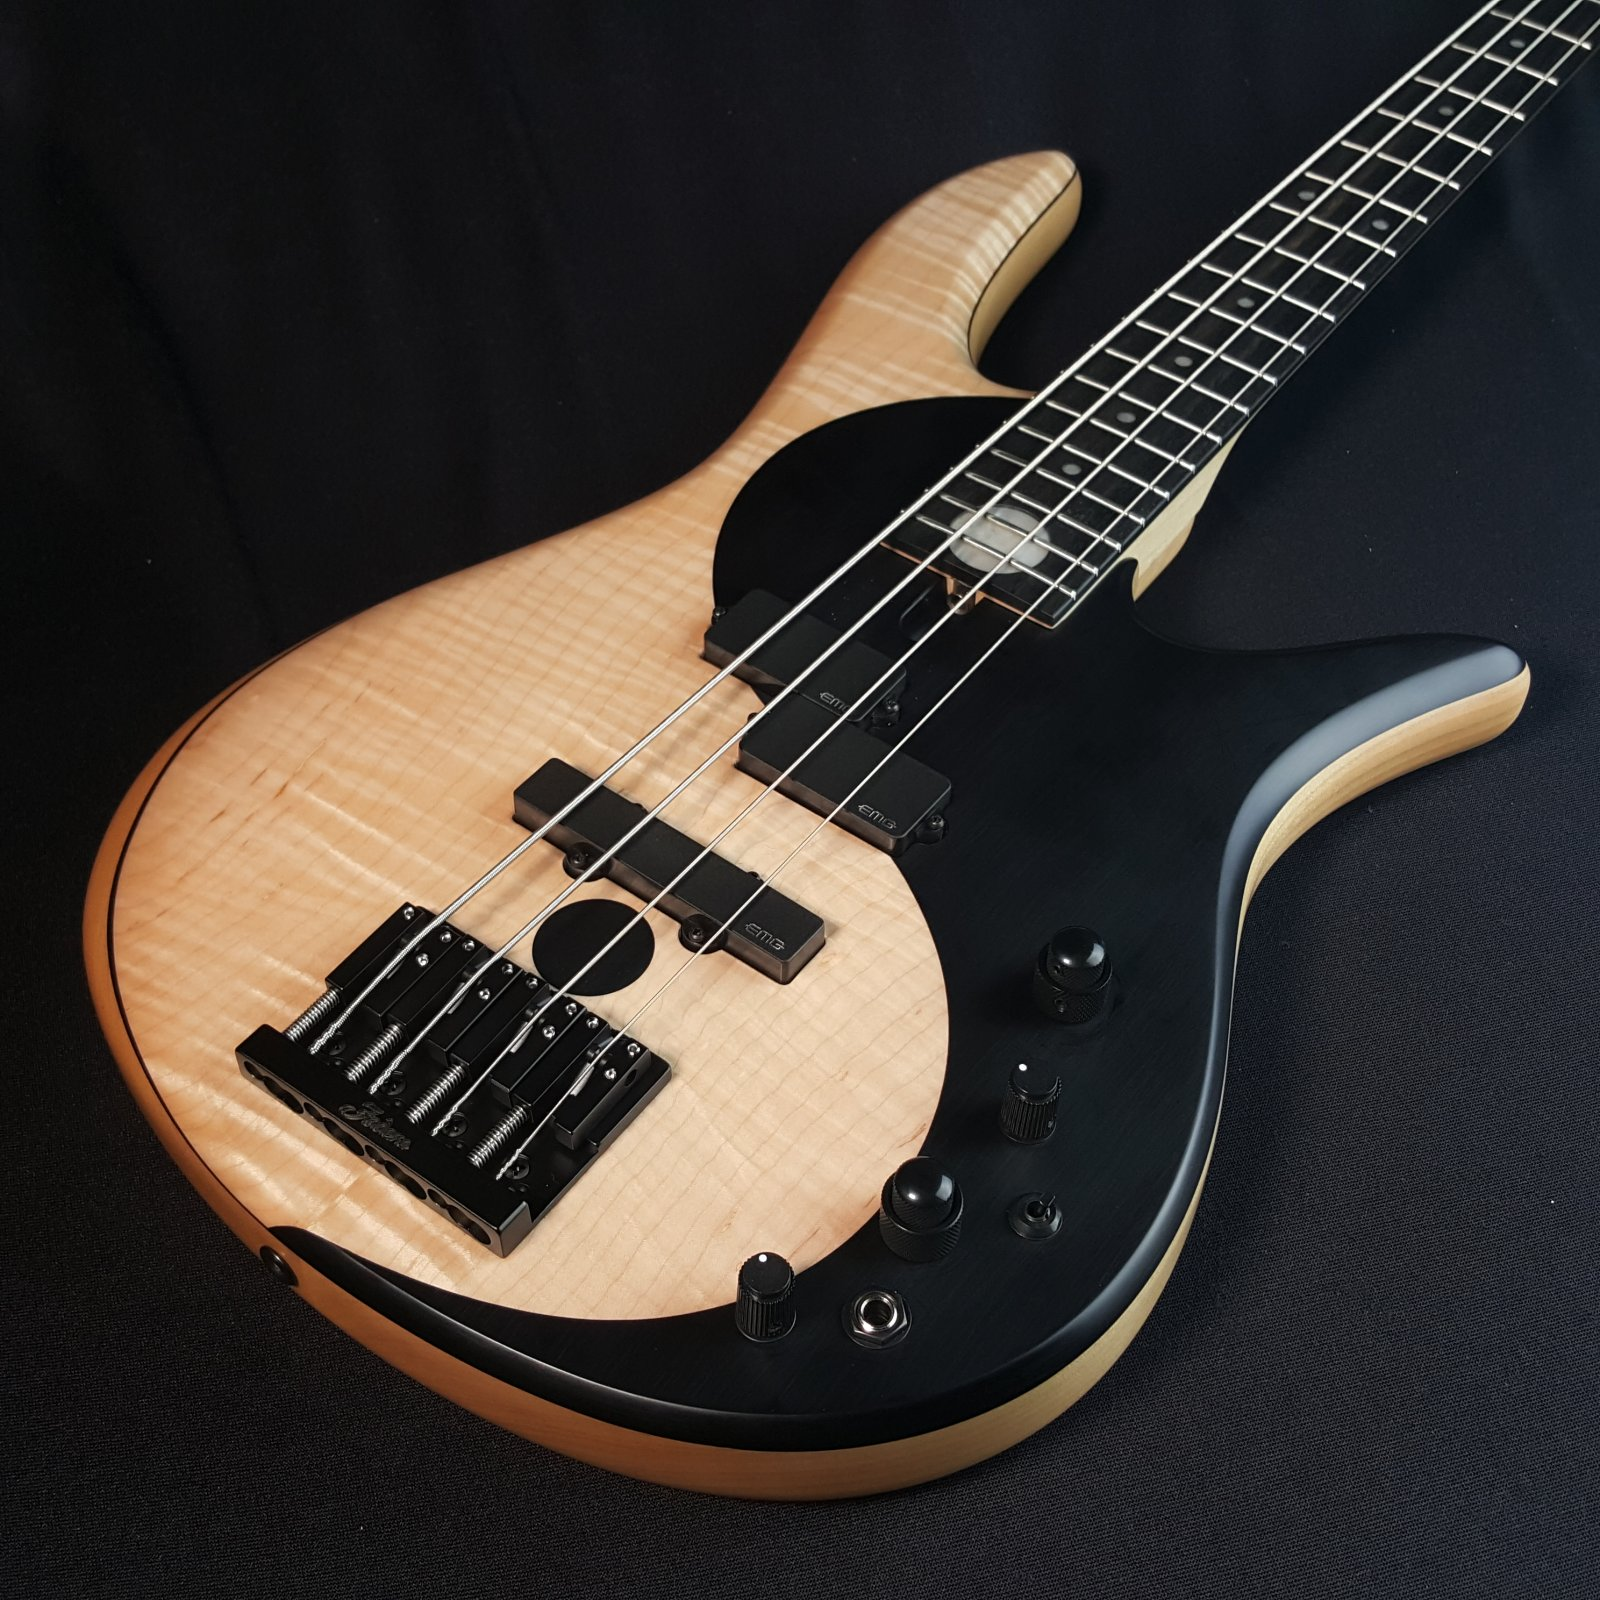 Fodera Yin Yang Standard 4 String Bass With Case